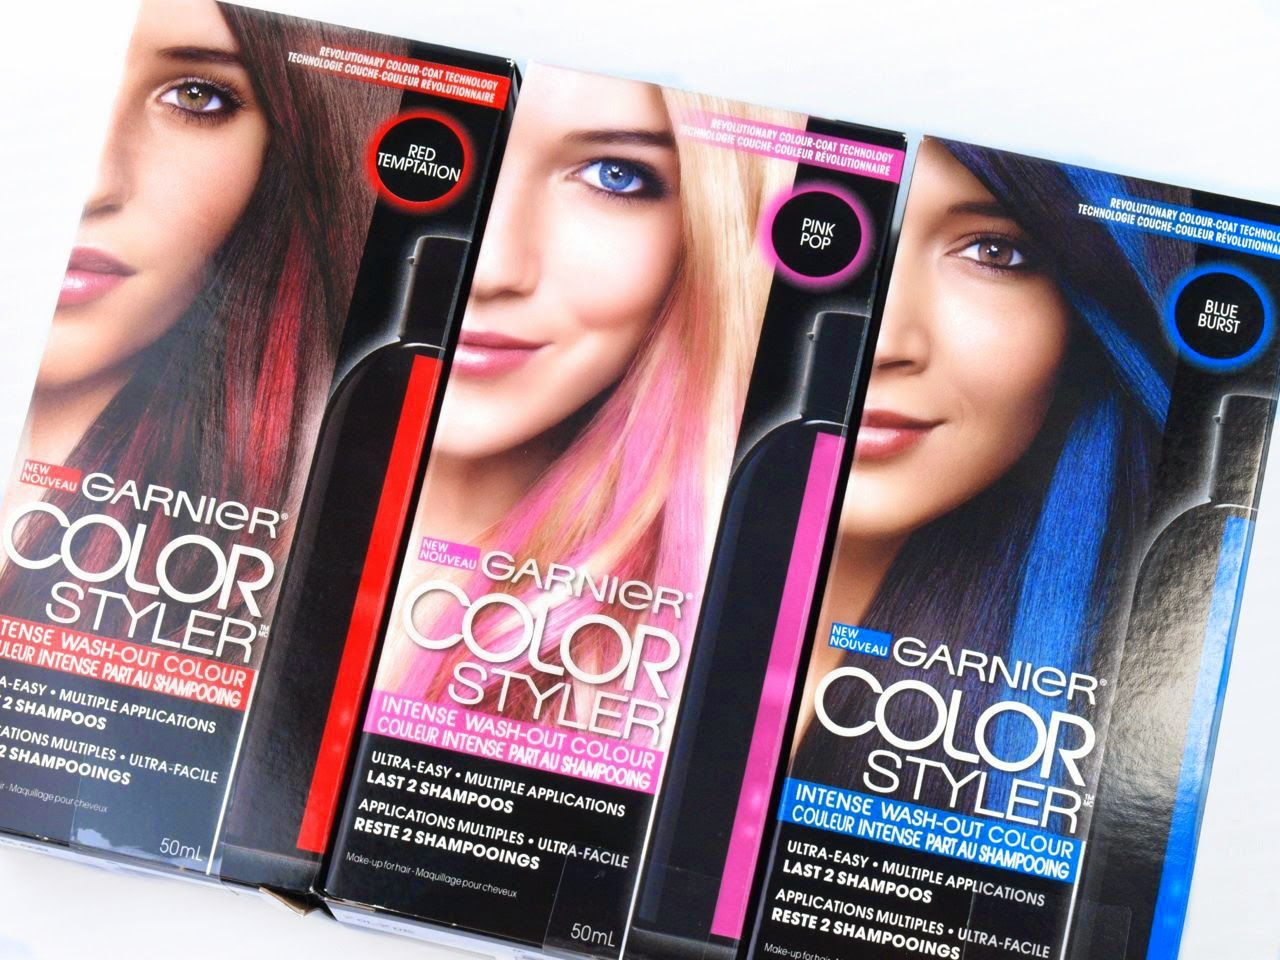 Garnier Color Styler Intense Wash-Out Color: Review | Hair ...